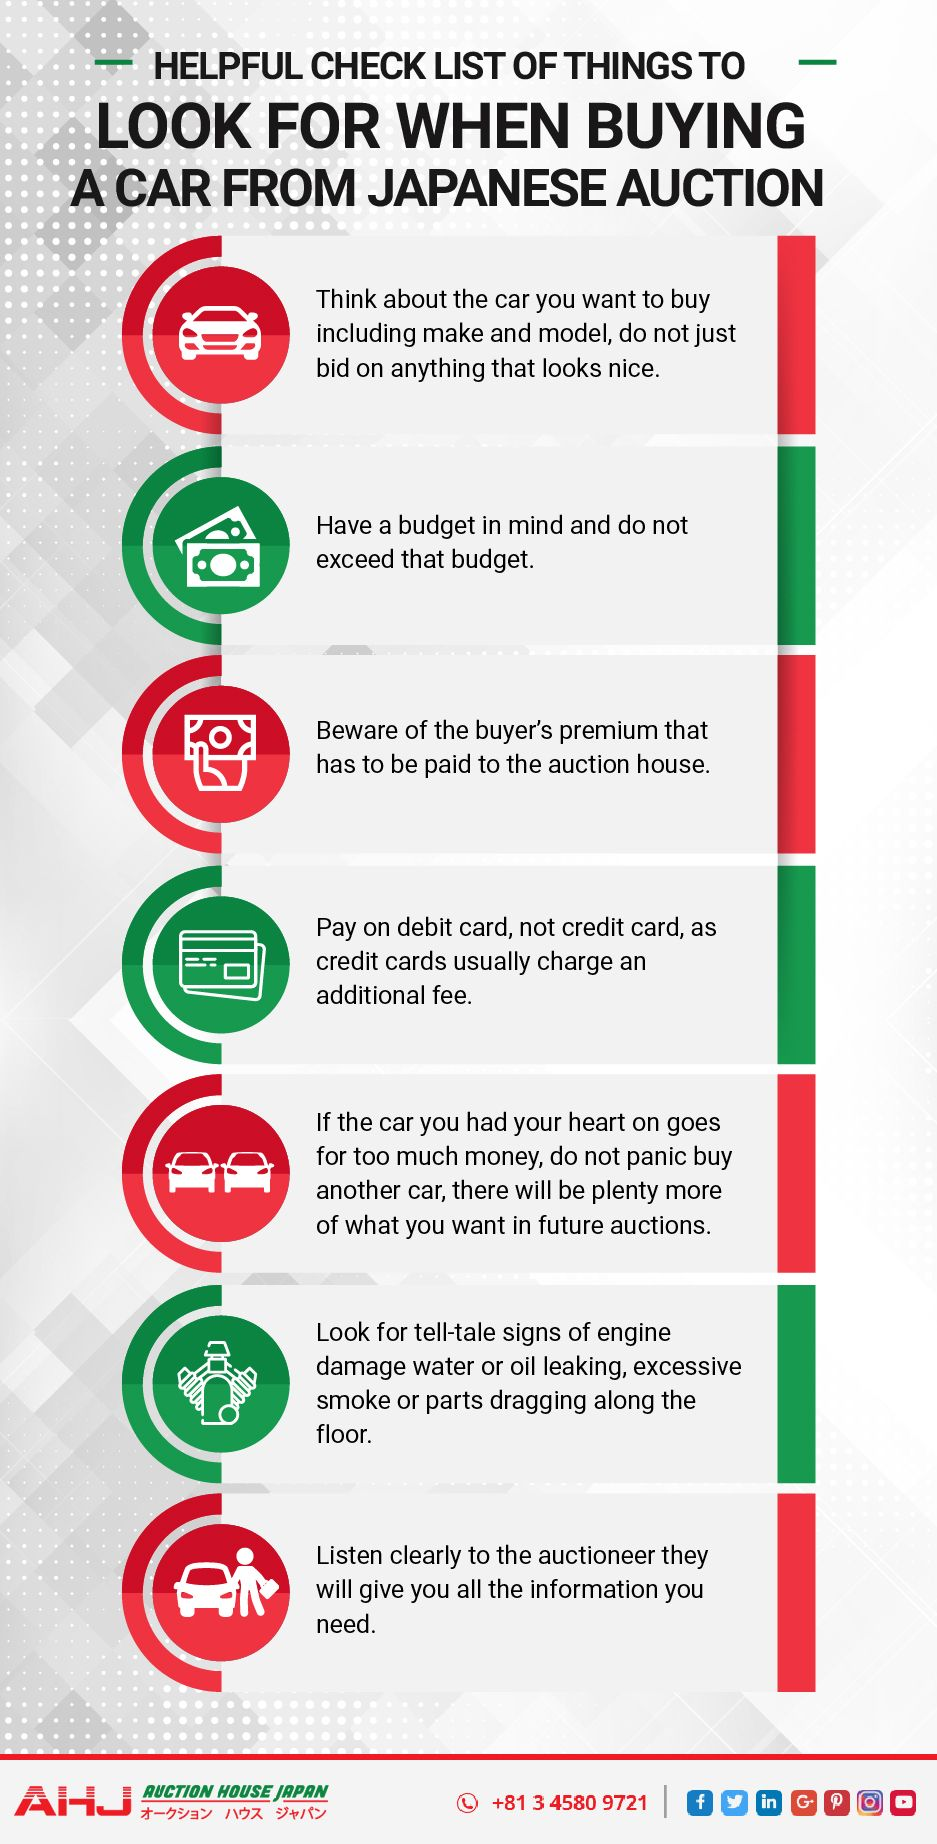 Helpful Check List Of Things To Look For When Buying A Car From